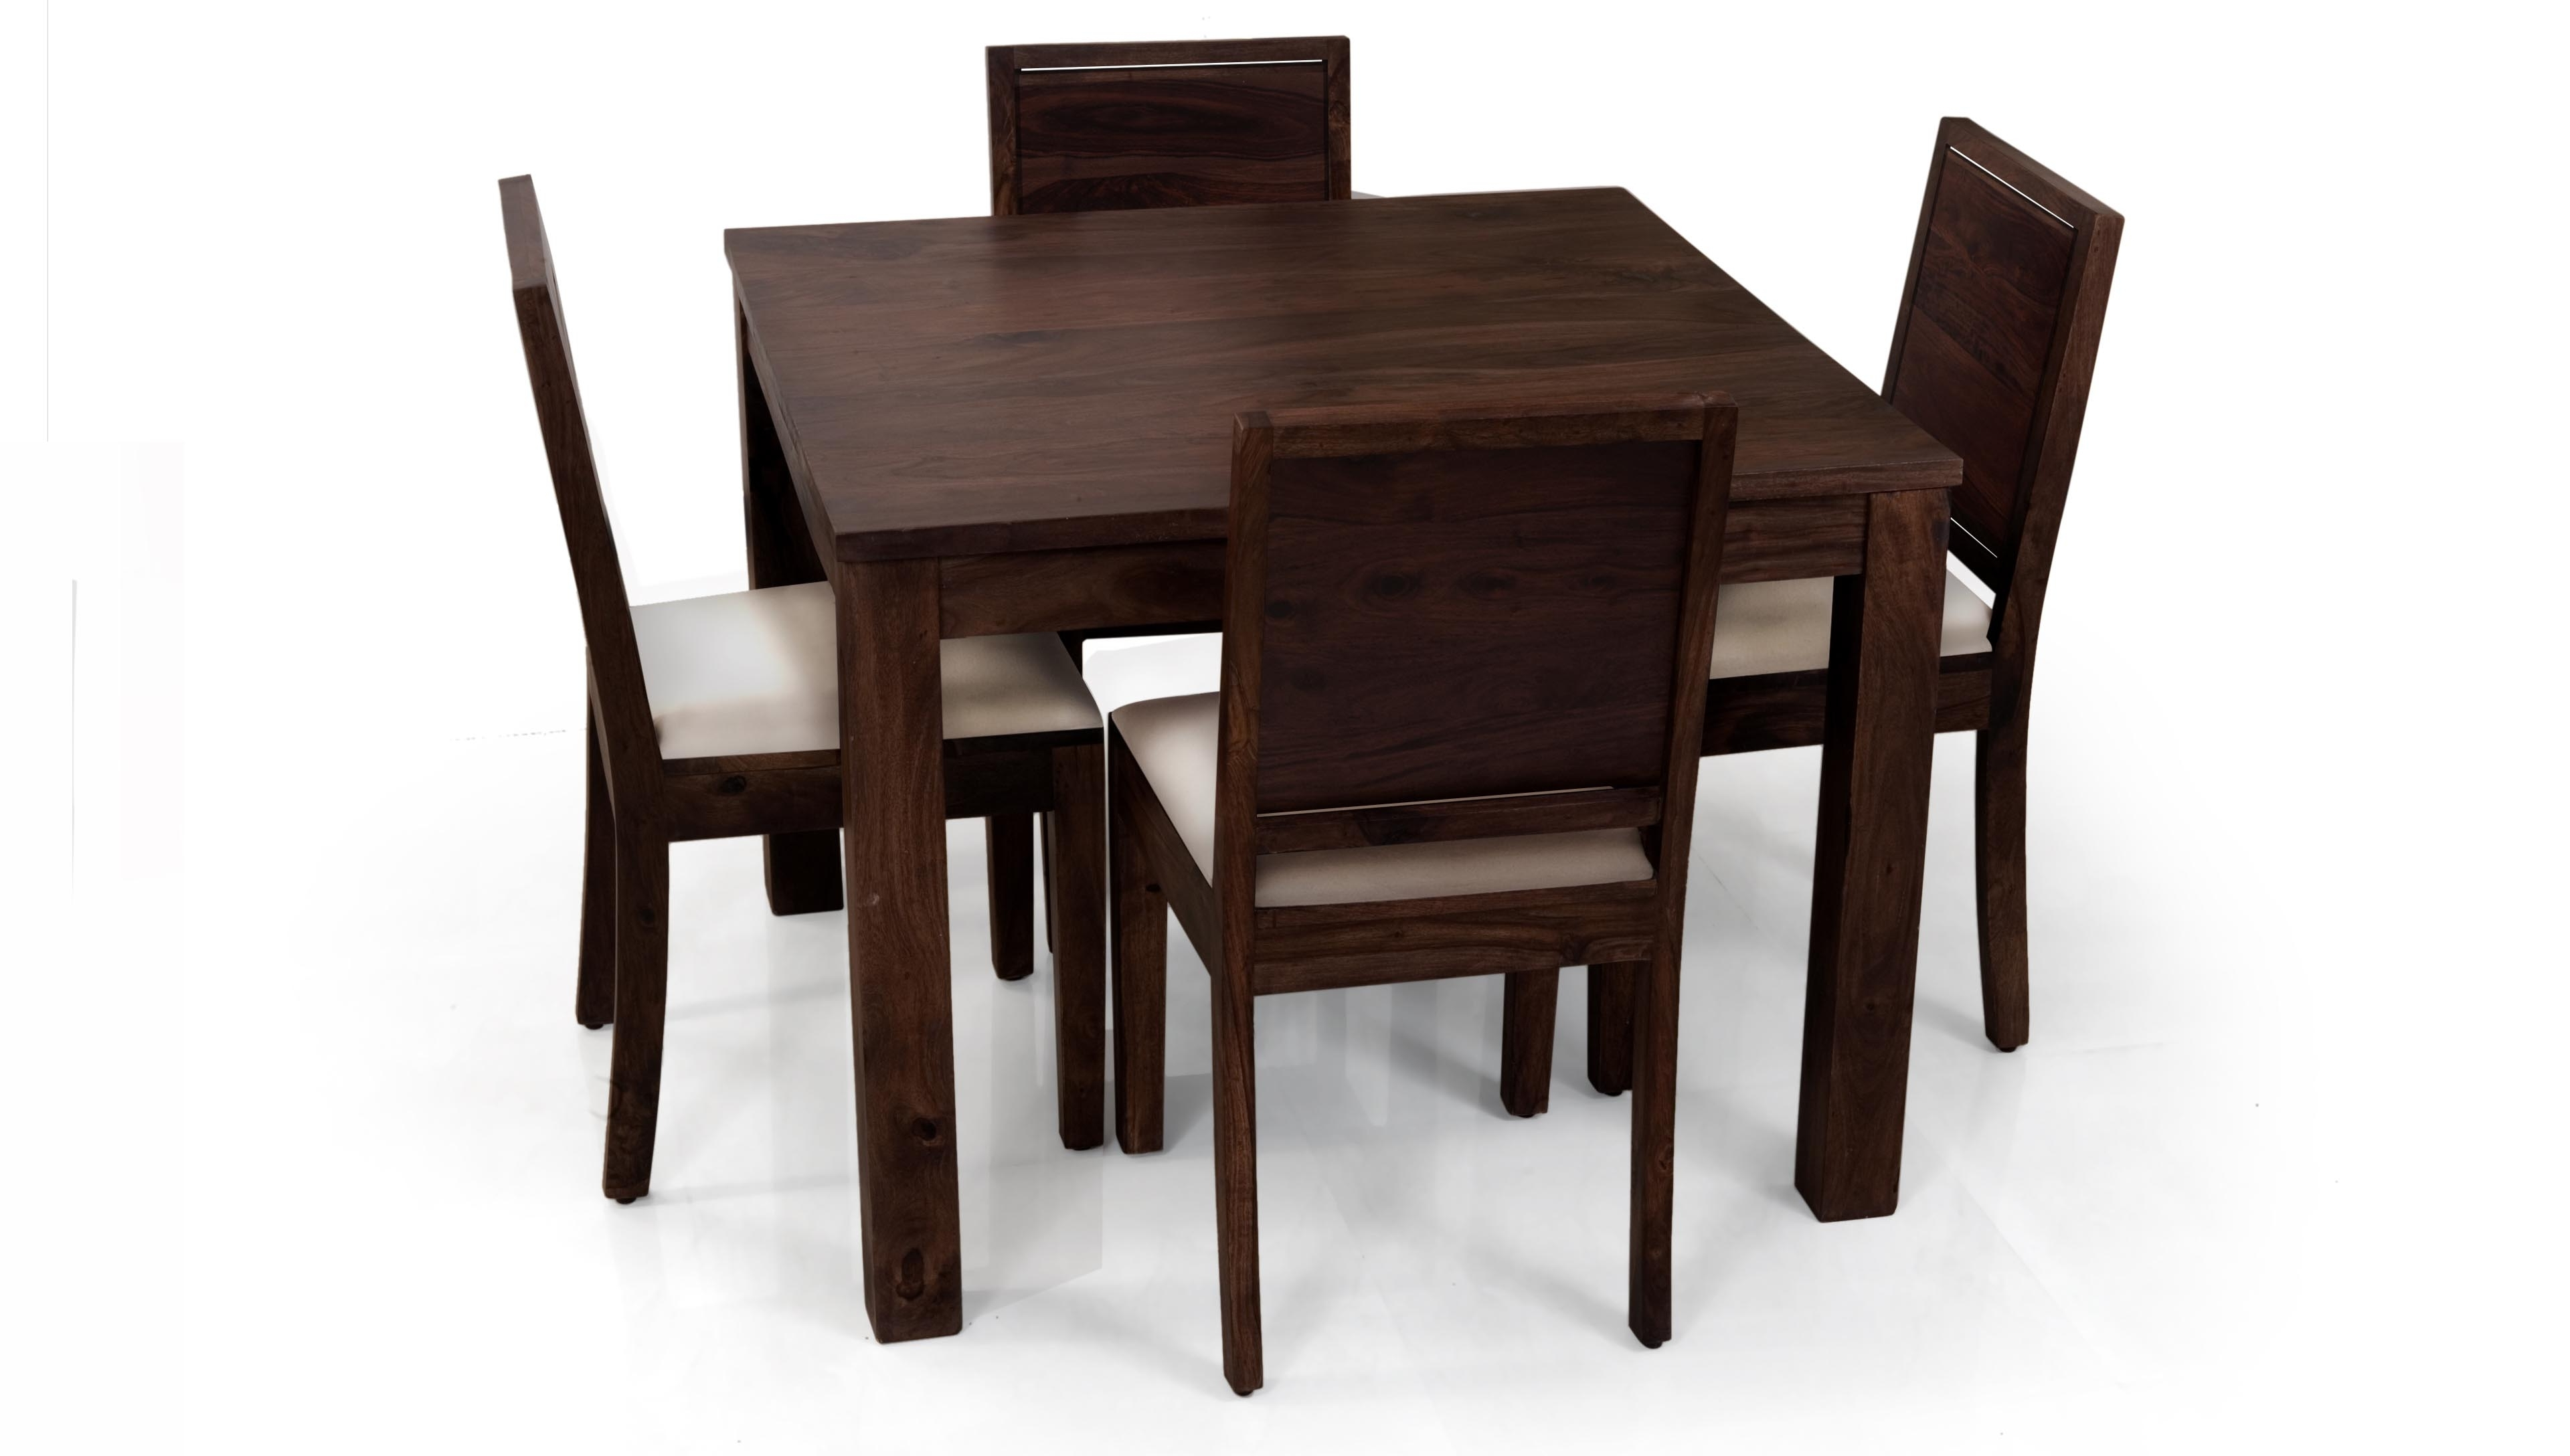 5 Piece Dining Table Set 4 Chairs Wood Kitchen Dinette Solid Oak Intended For Widely Used Small Dark Wood Dining Tables (View 8 of 25)